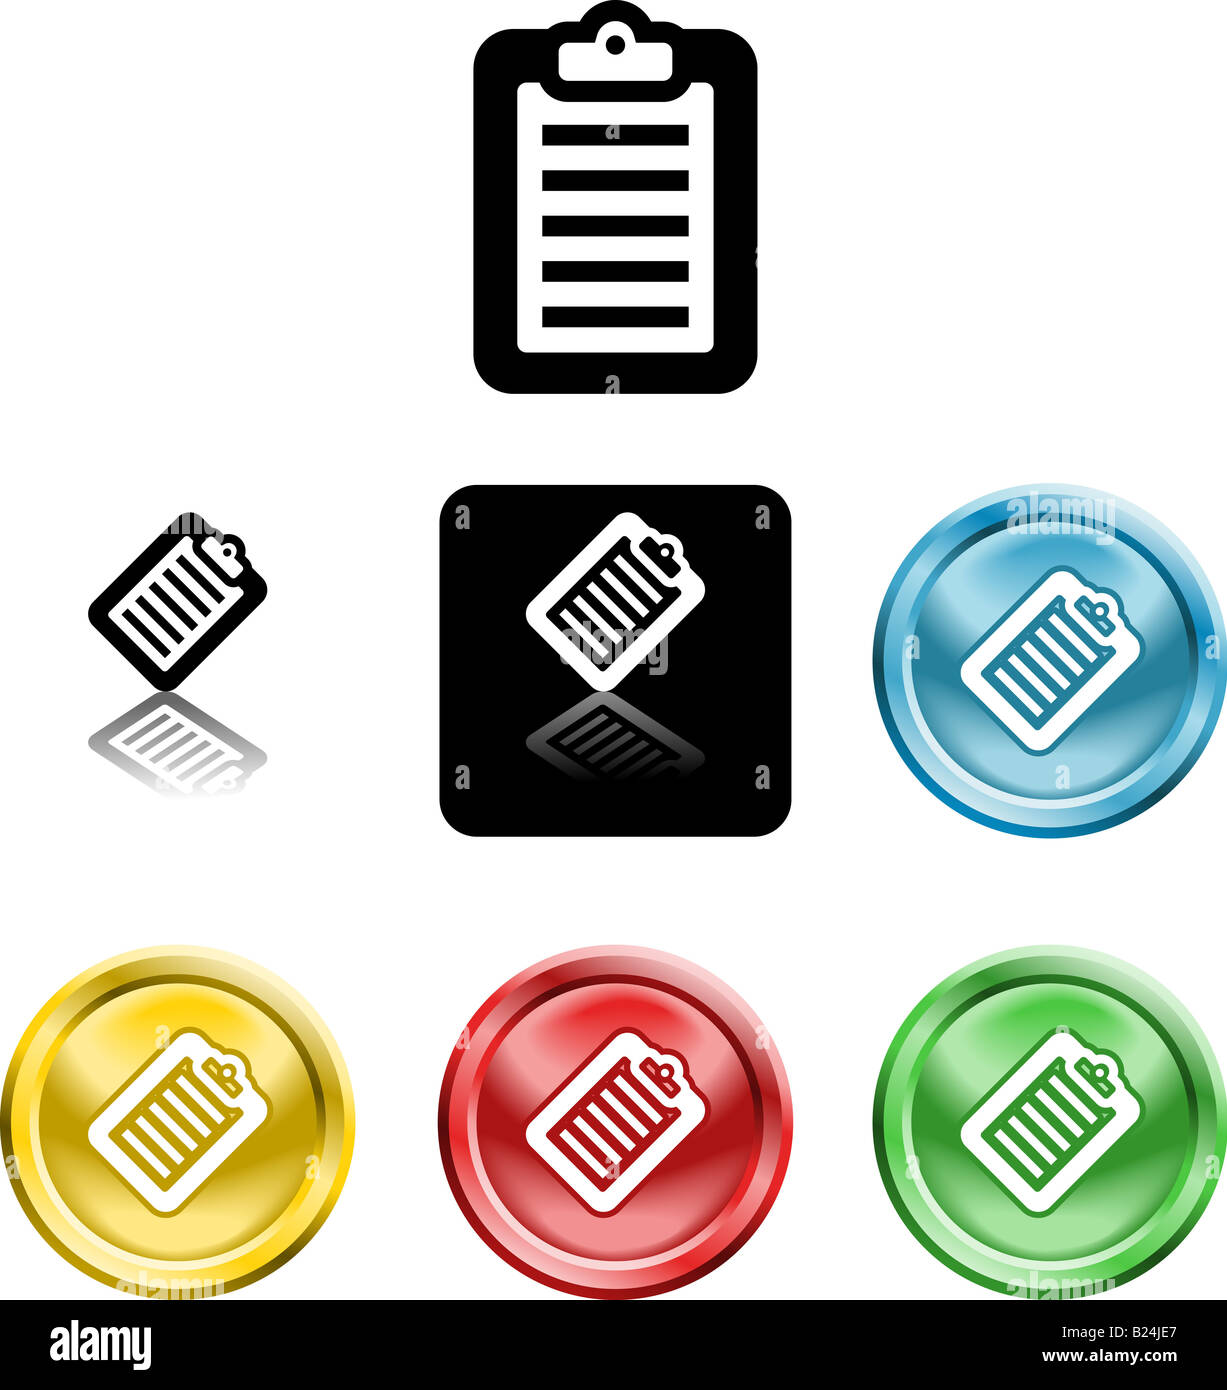 Several versions of an icon symbol of a stylised clipboard with document on it - Stock Image